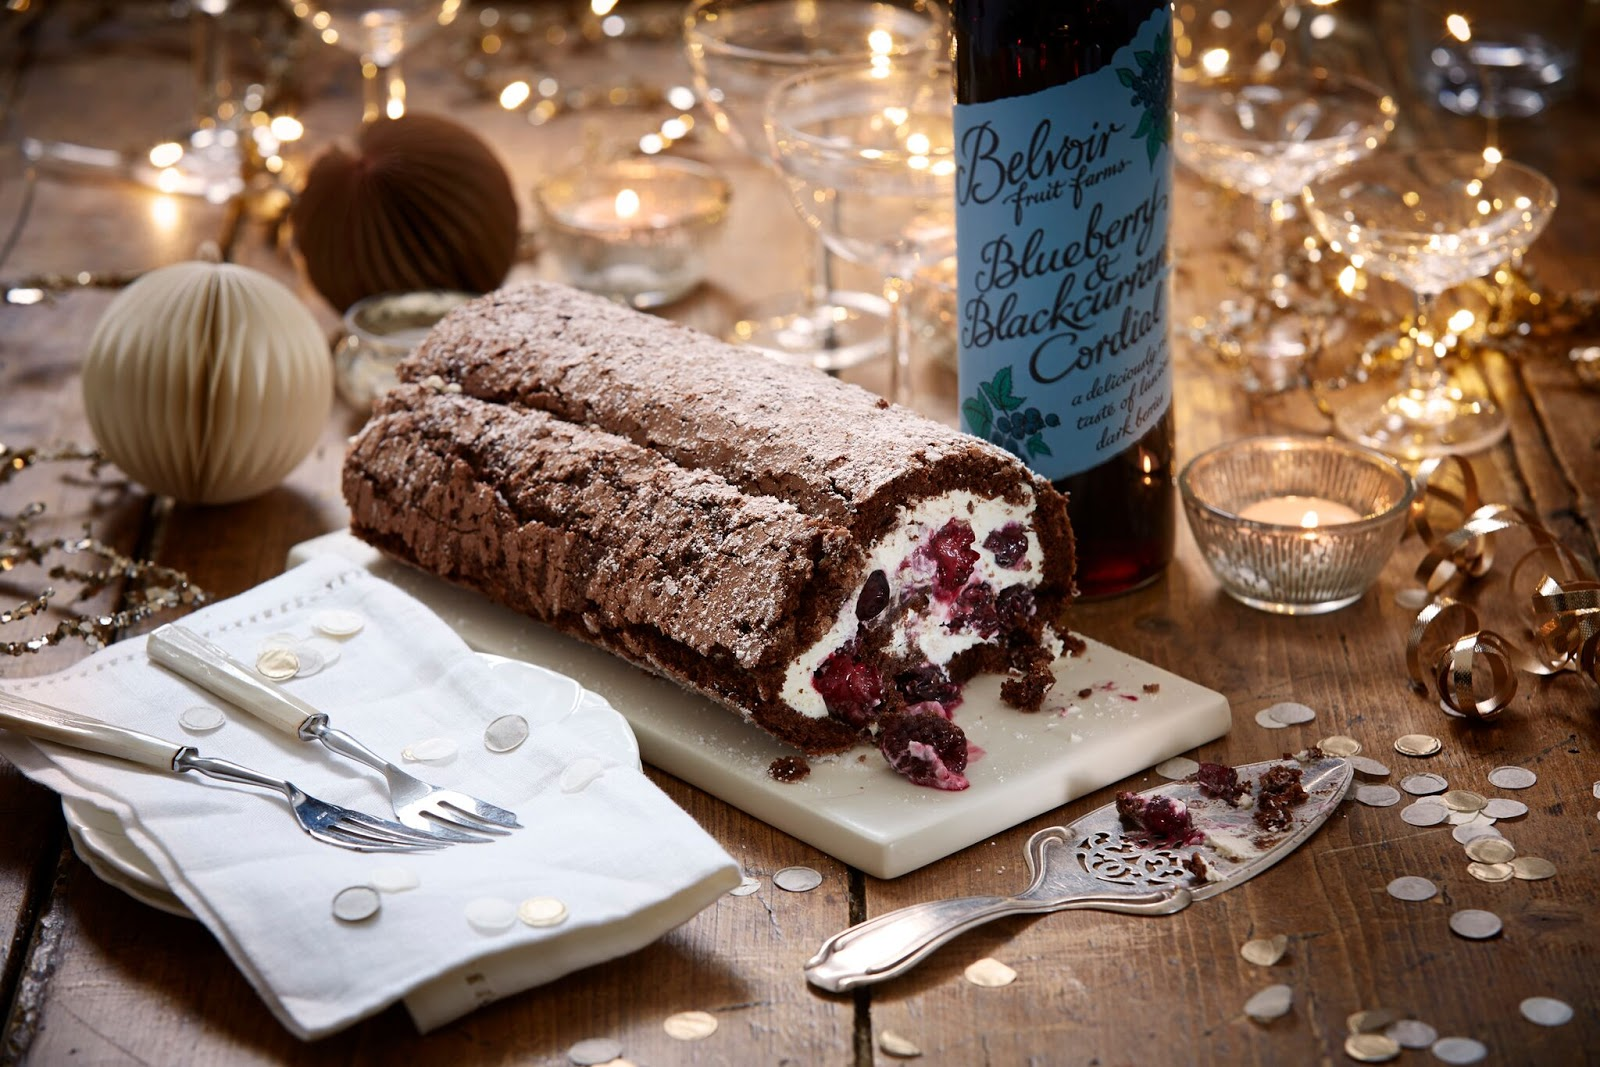 How To Make A Black Forest Gateau Roulade